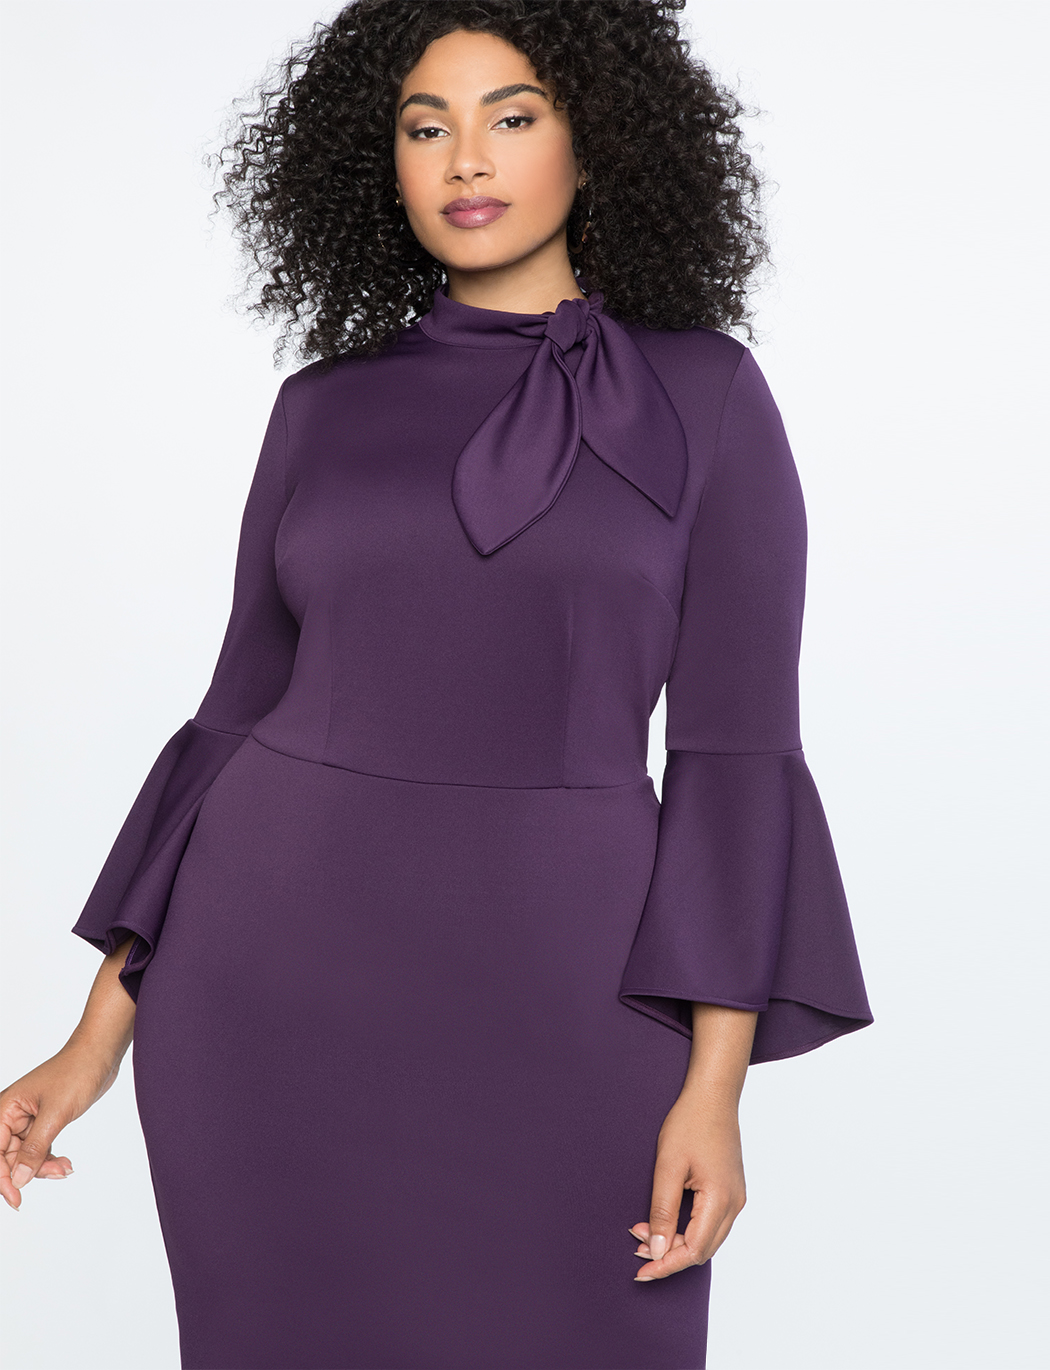 Tie Neck Flounce Sleeve Dress | Women\'s Plus Size Dresses | ELOQUII